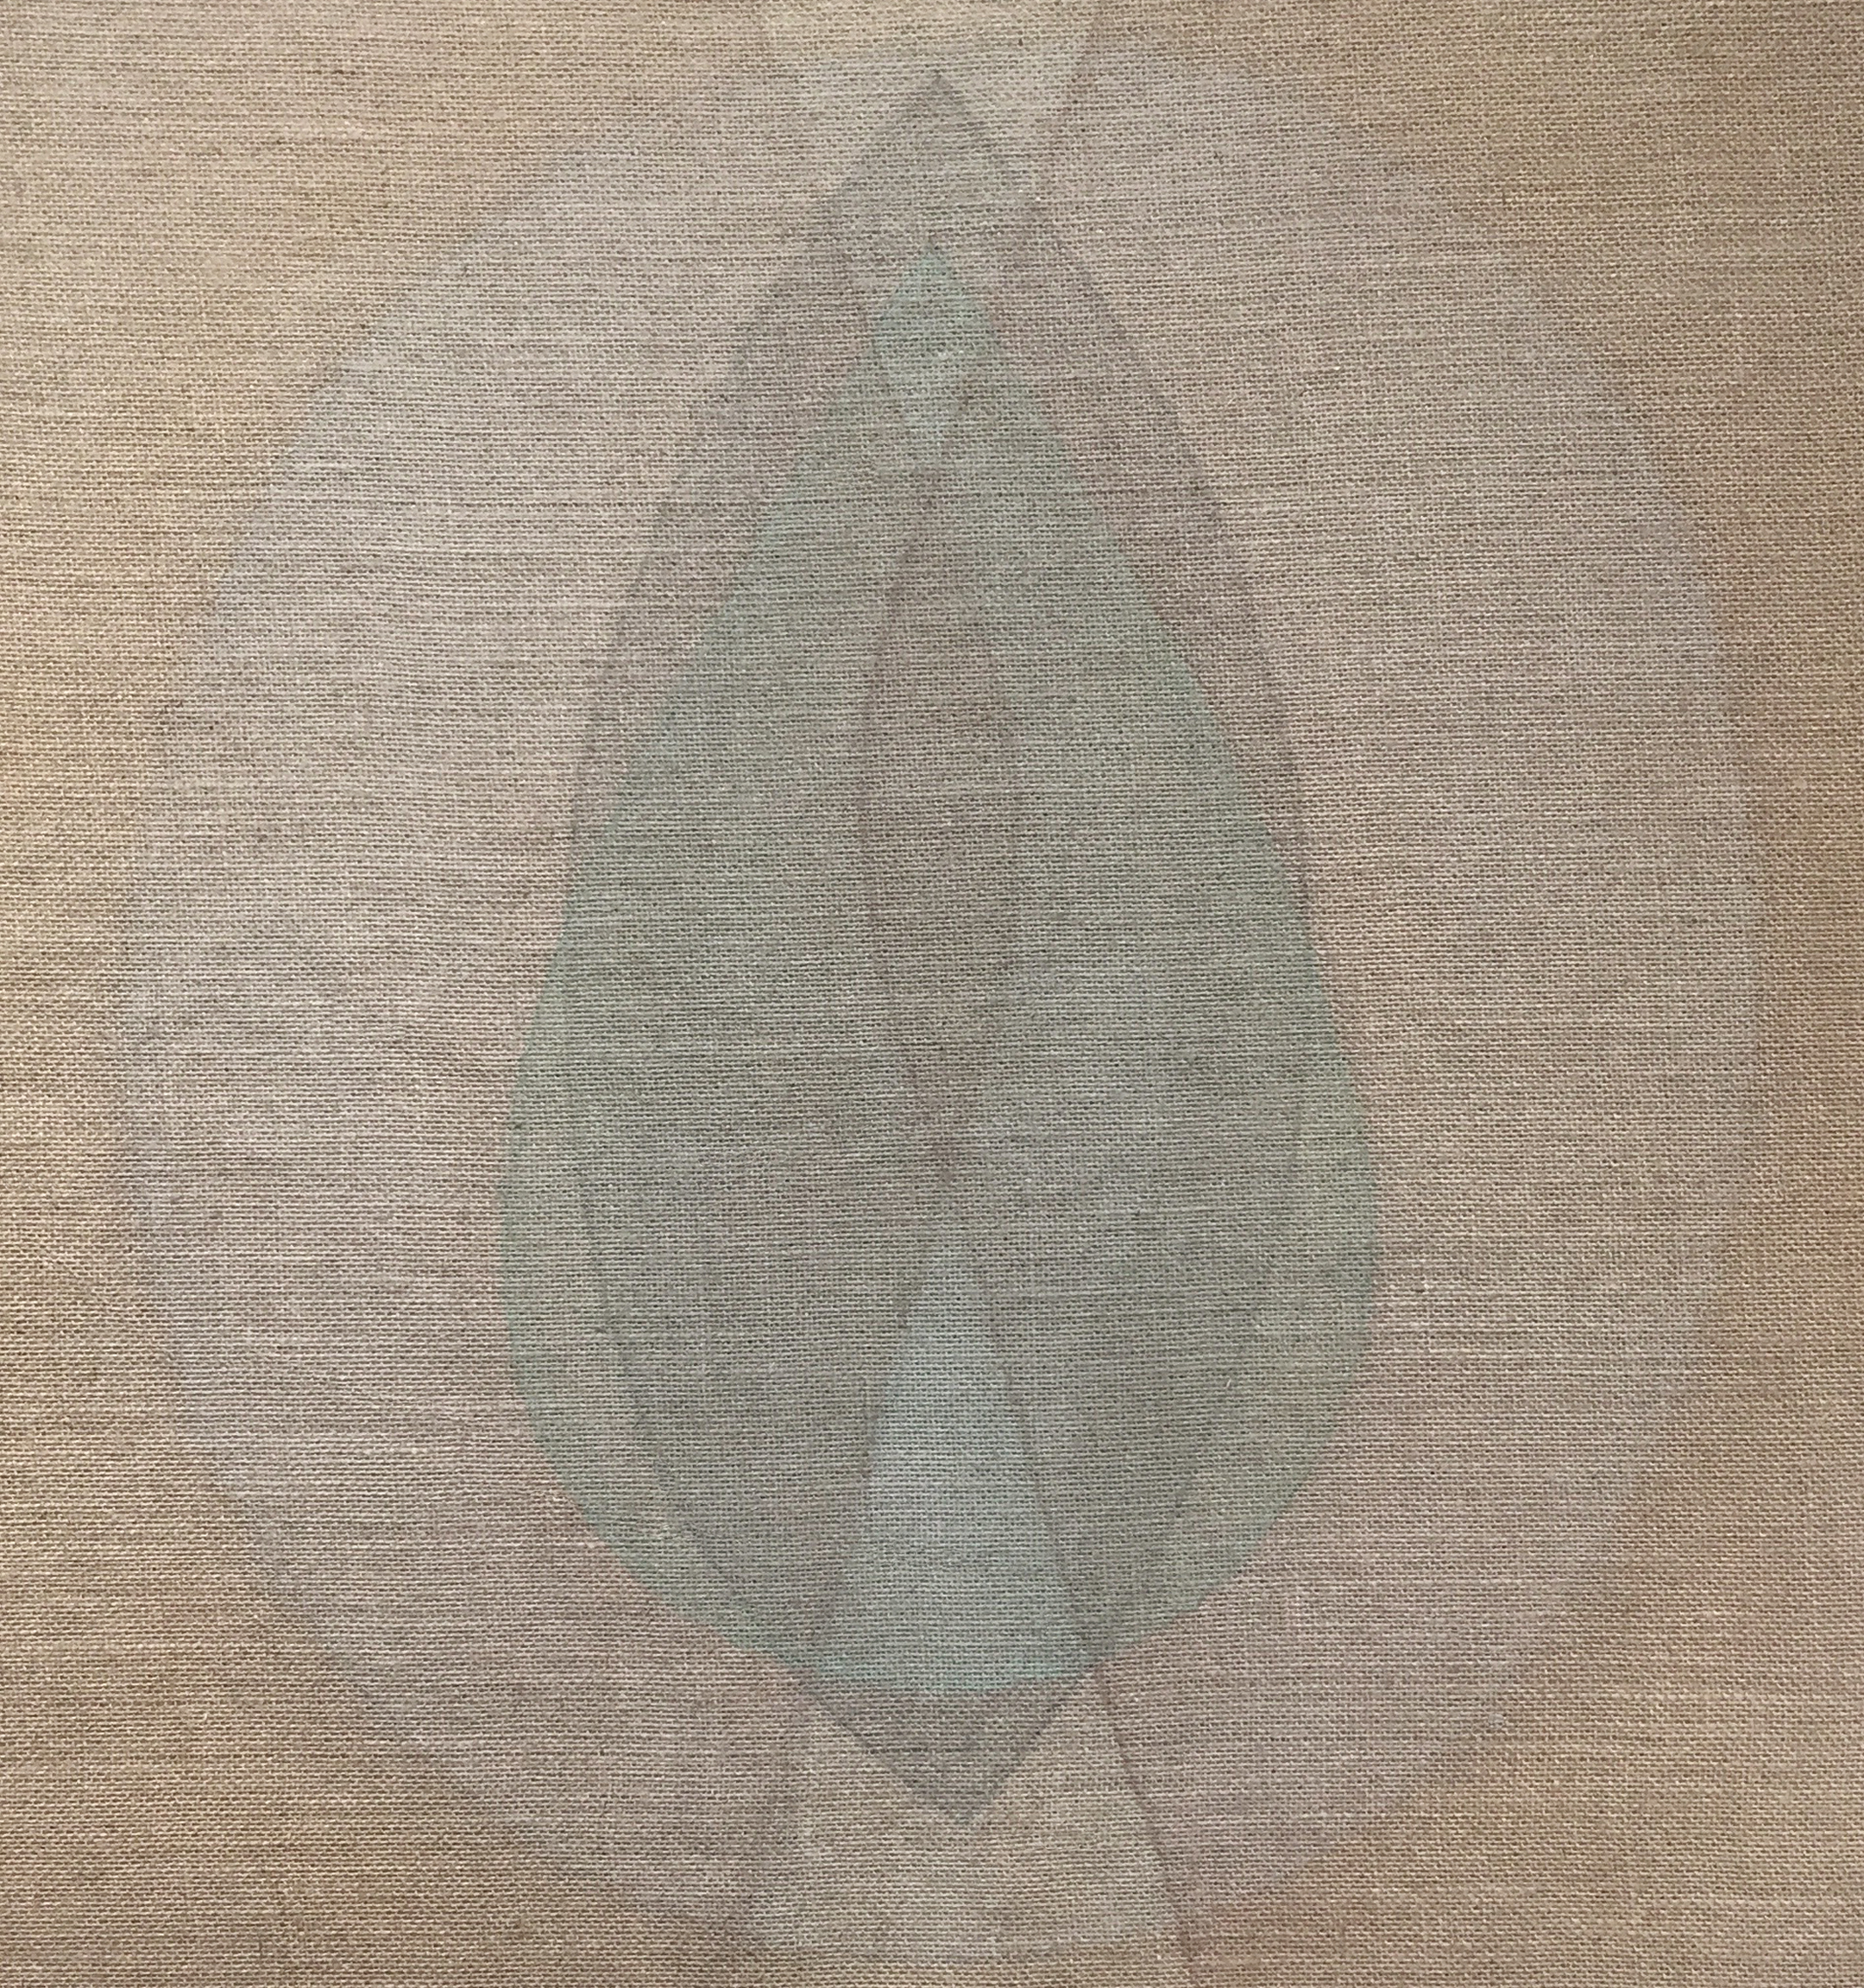 Seed green-red , 2018, Ash, green earth and devon mud on burlap, 31 x 29 in (79 x 74 cm)